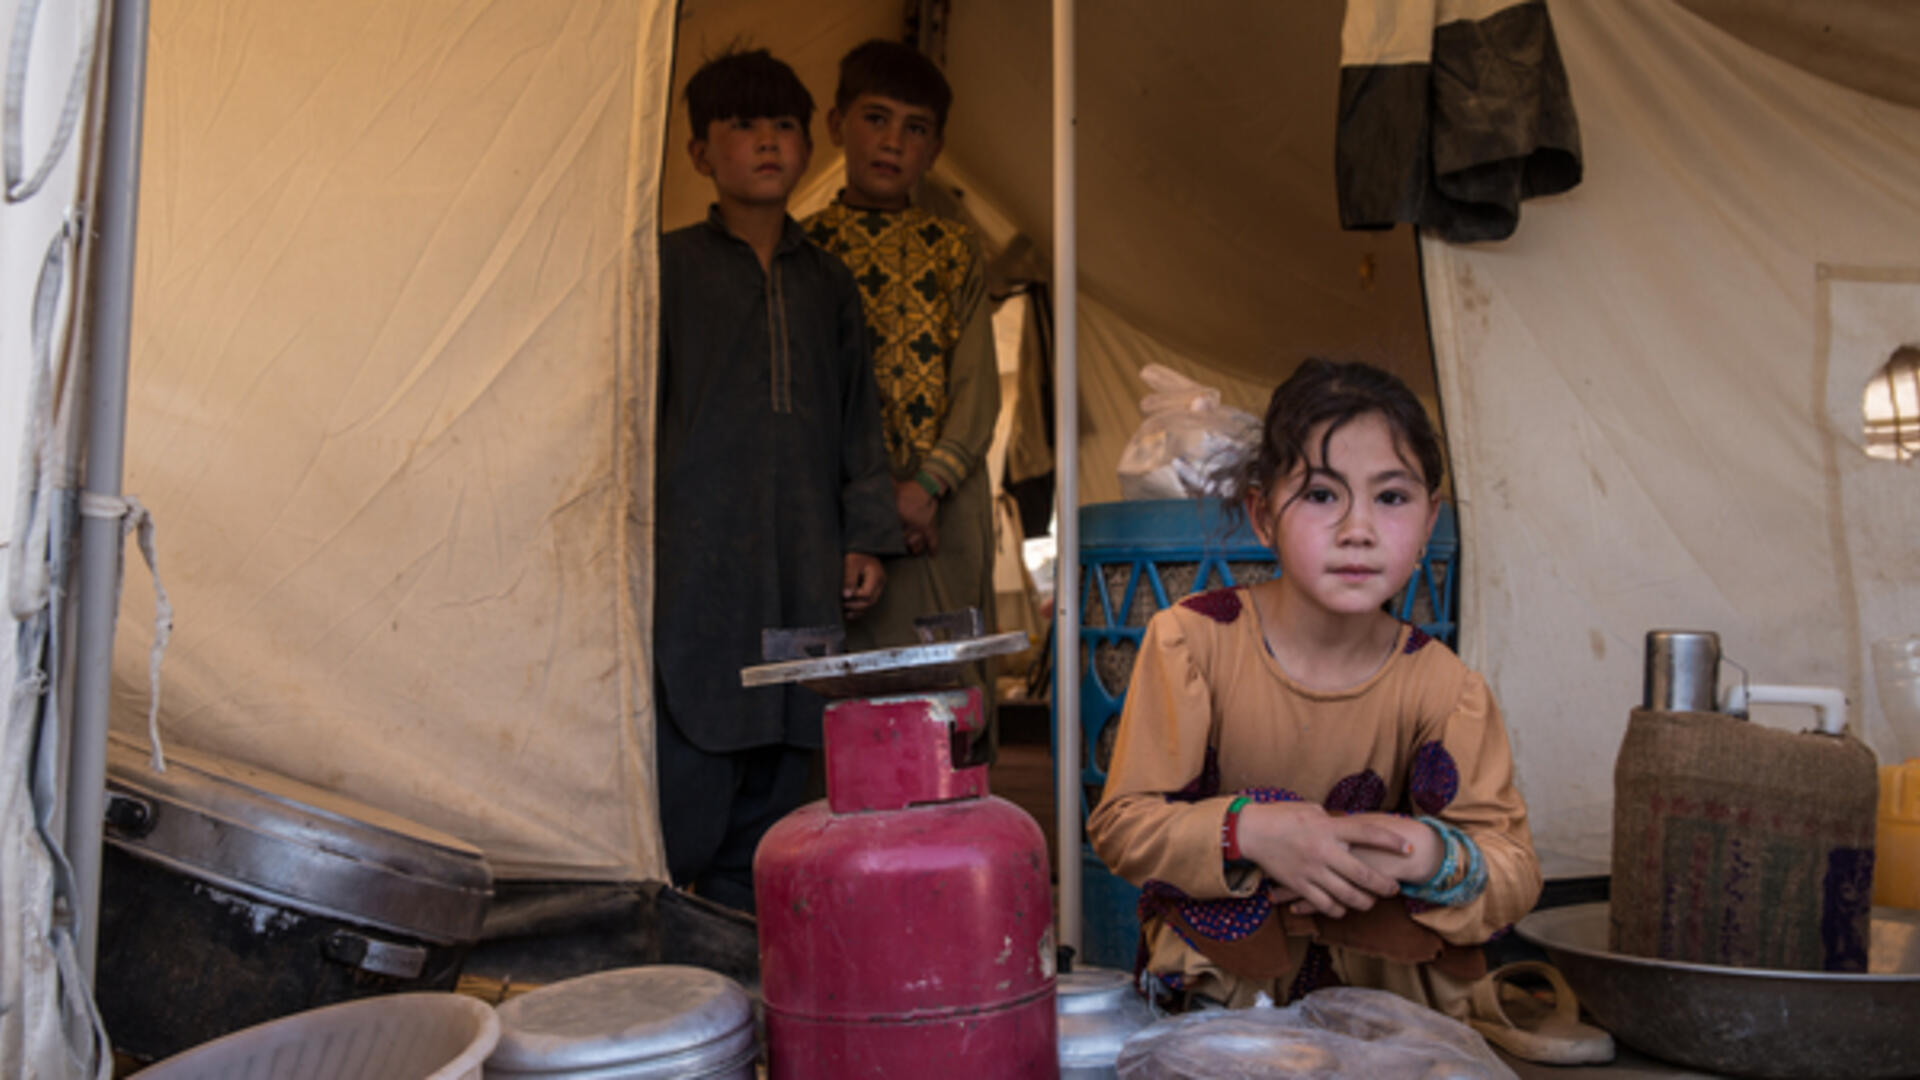 Three children at the entrance to a tent in Badghis, Afghanistan where their family is living after being displaced by drought.